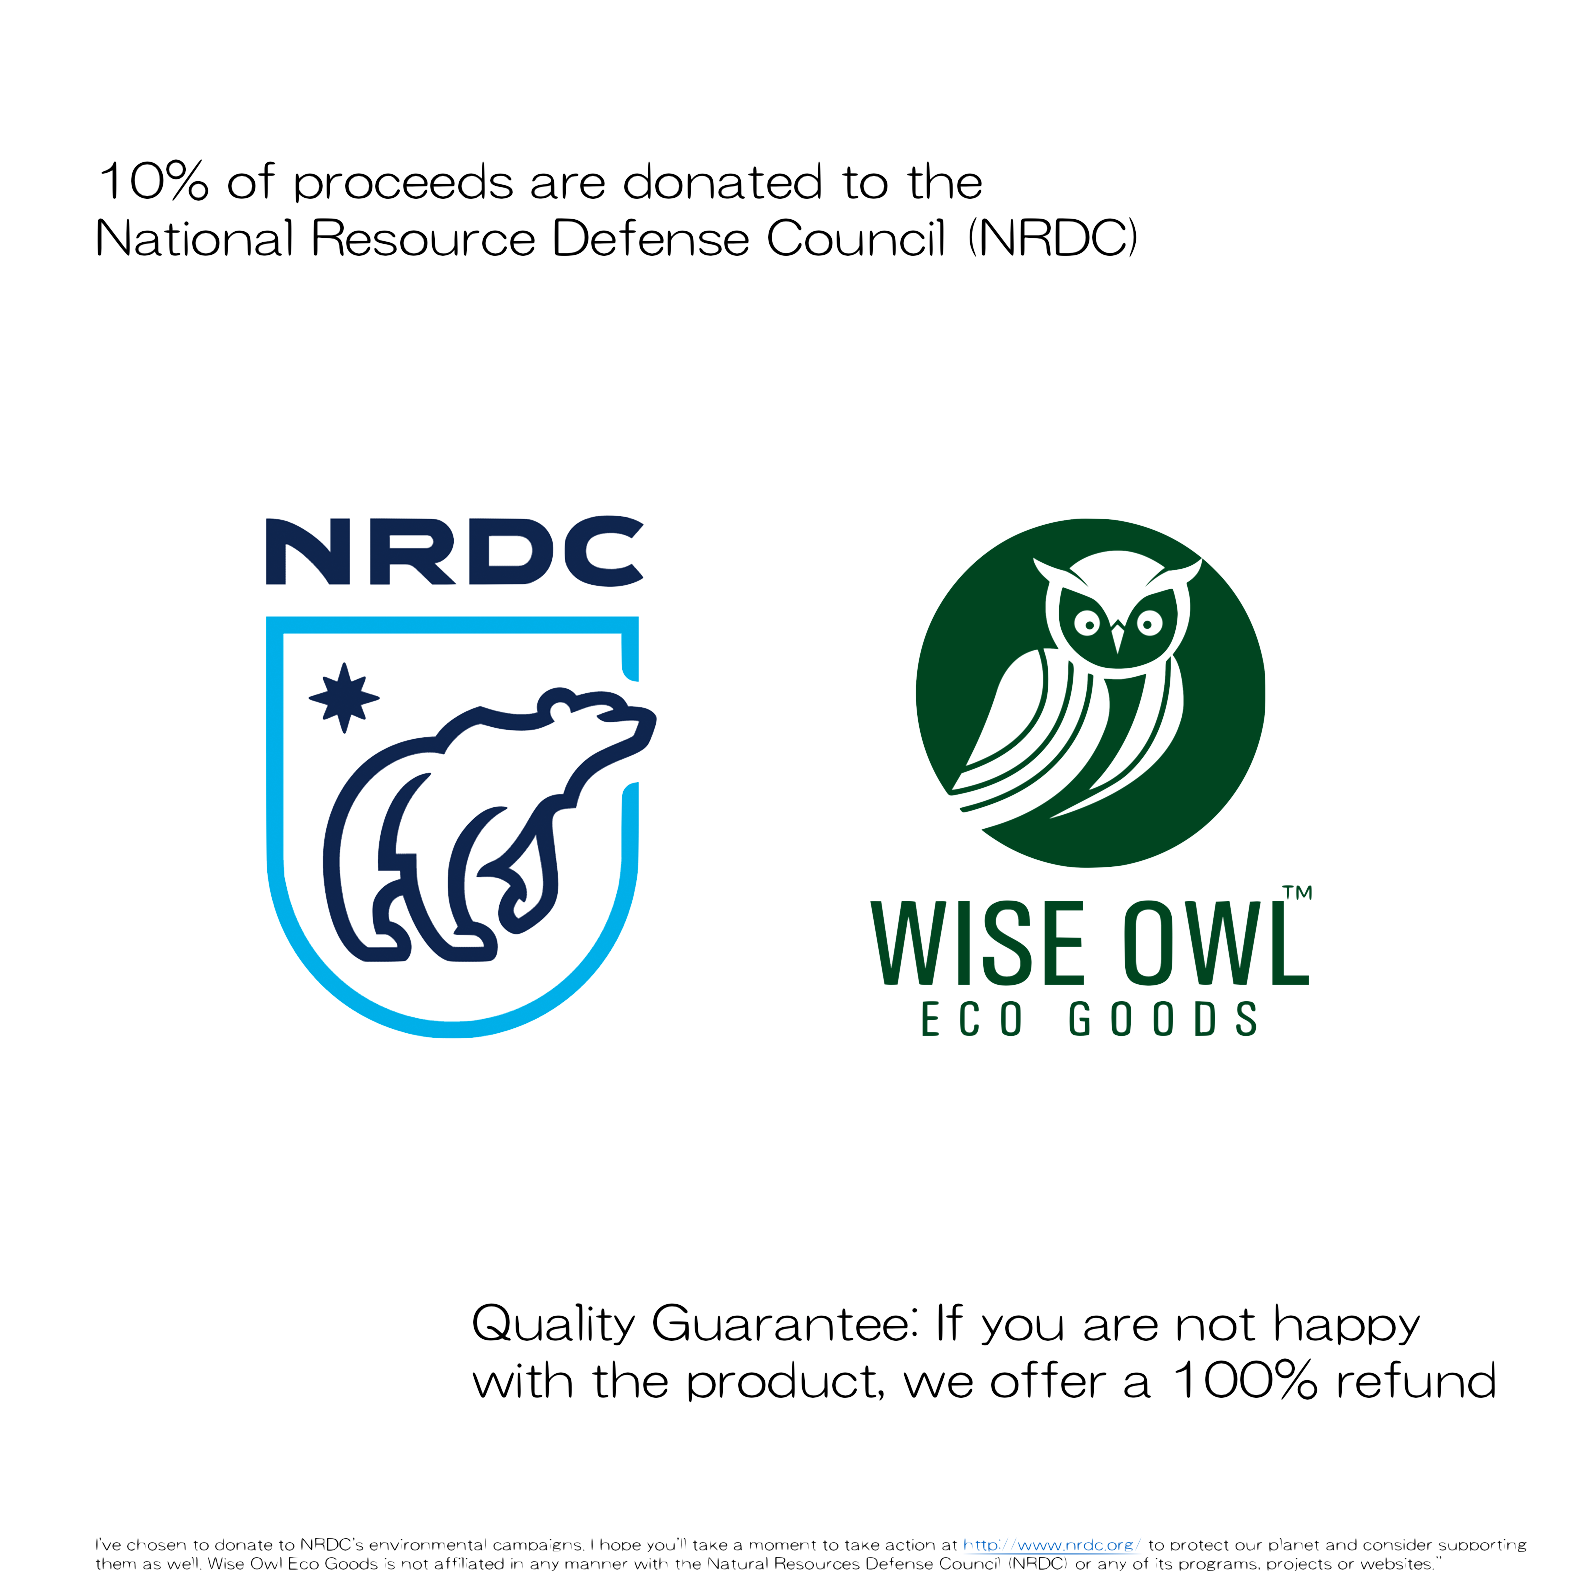 nrdc wise owl guarantee and donation pledge